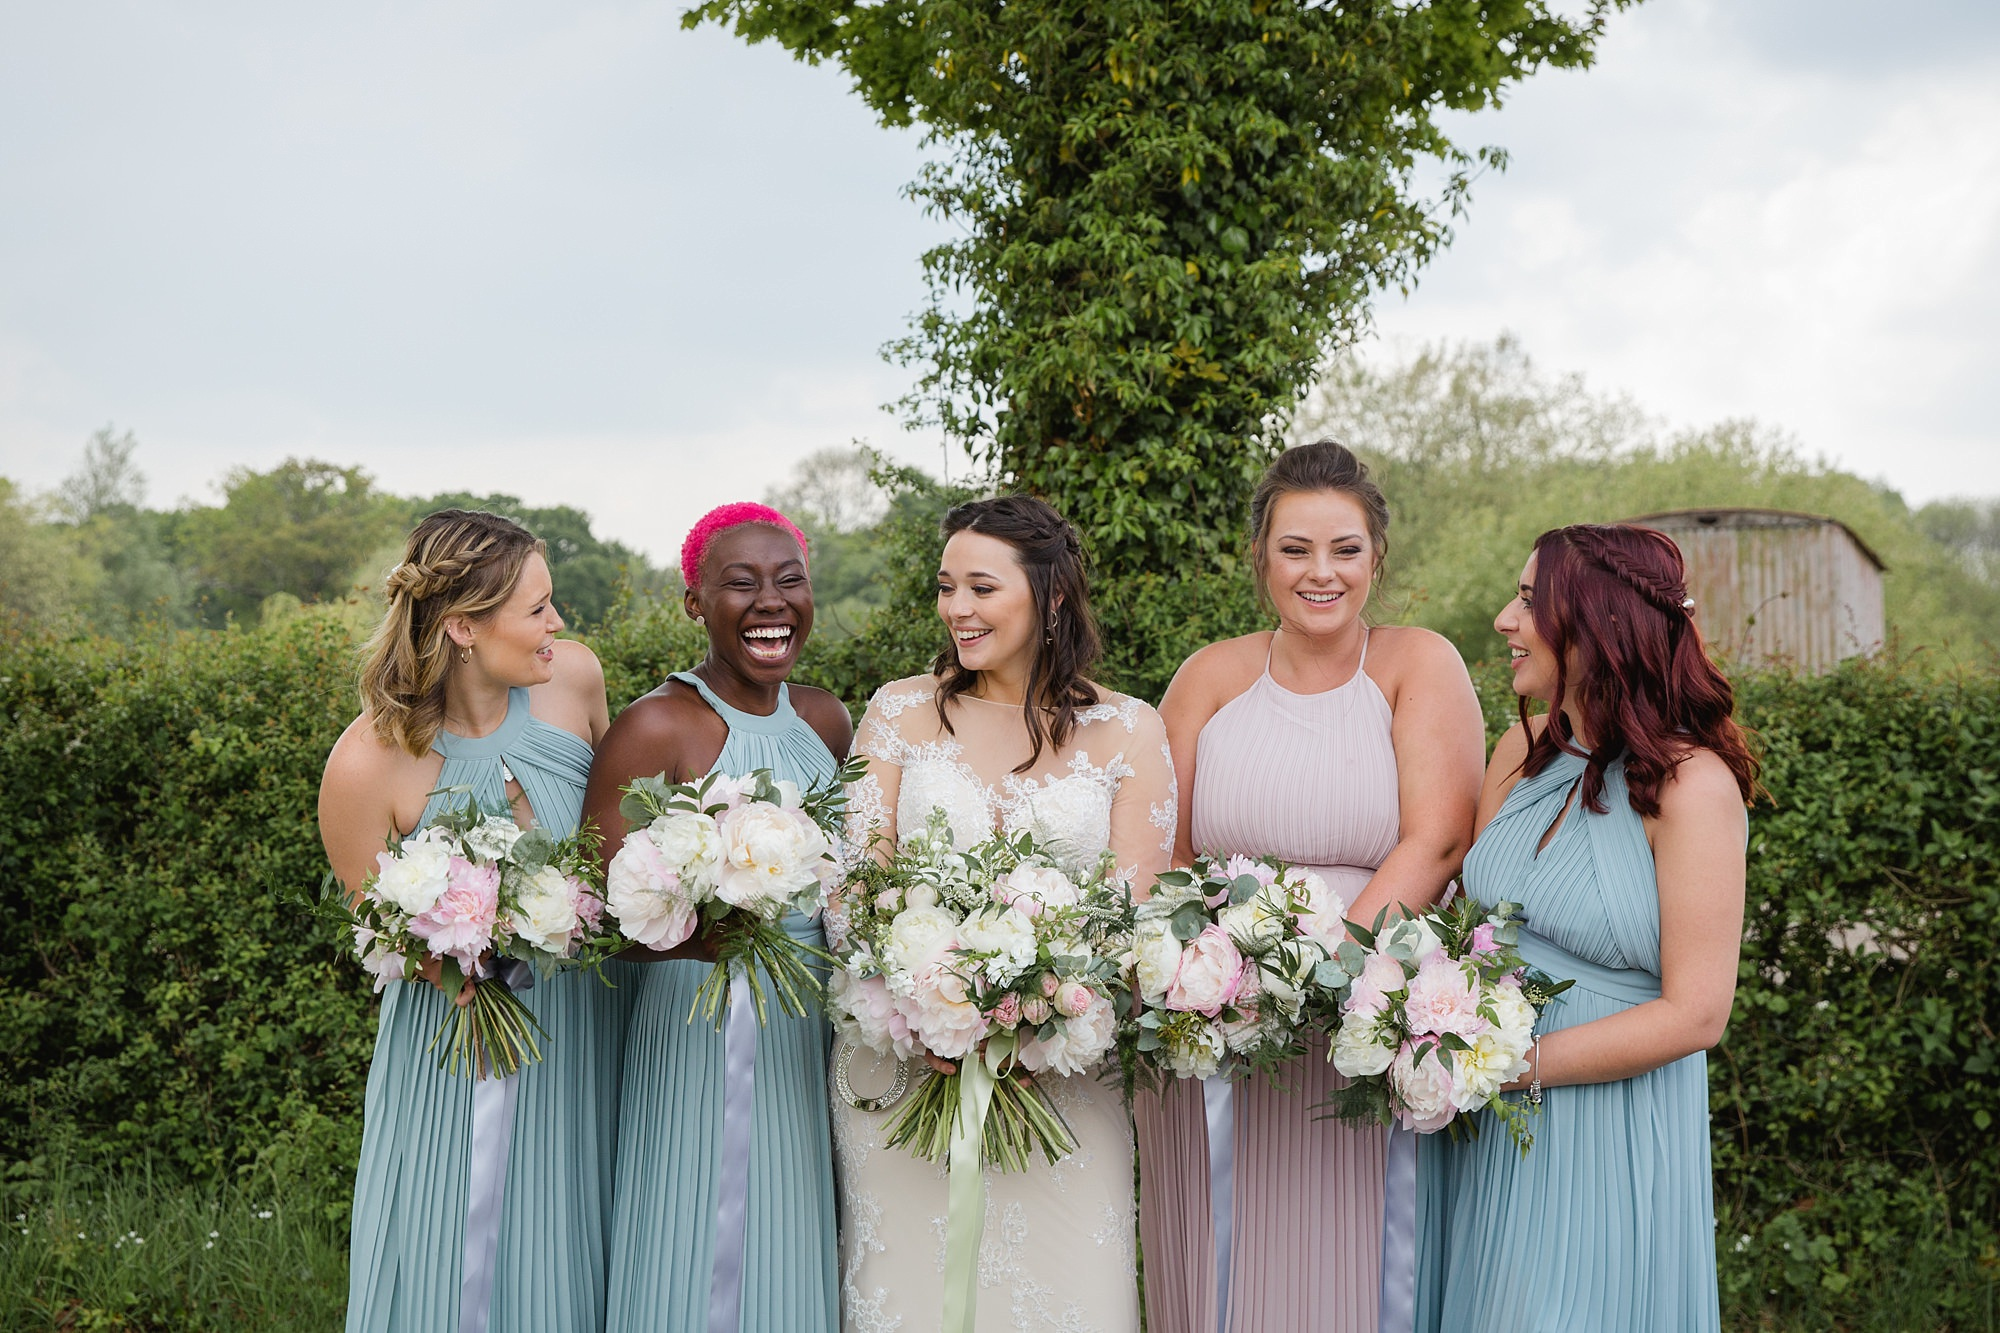 humanist wedding old greens barn bride and bridesmaids laugh together